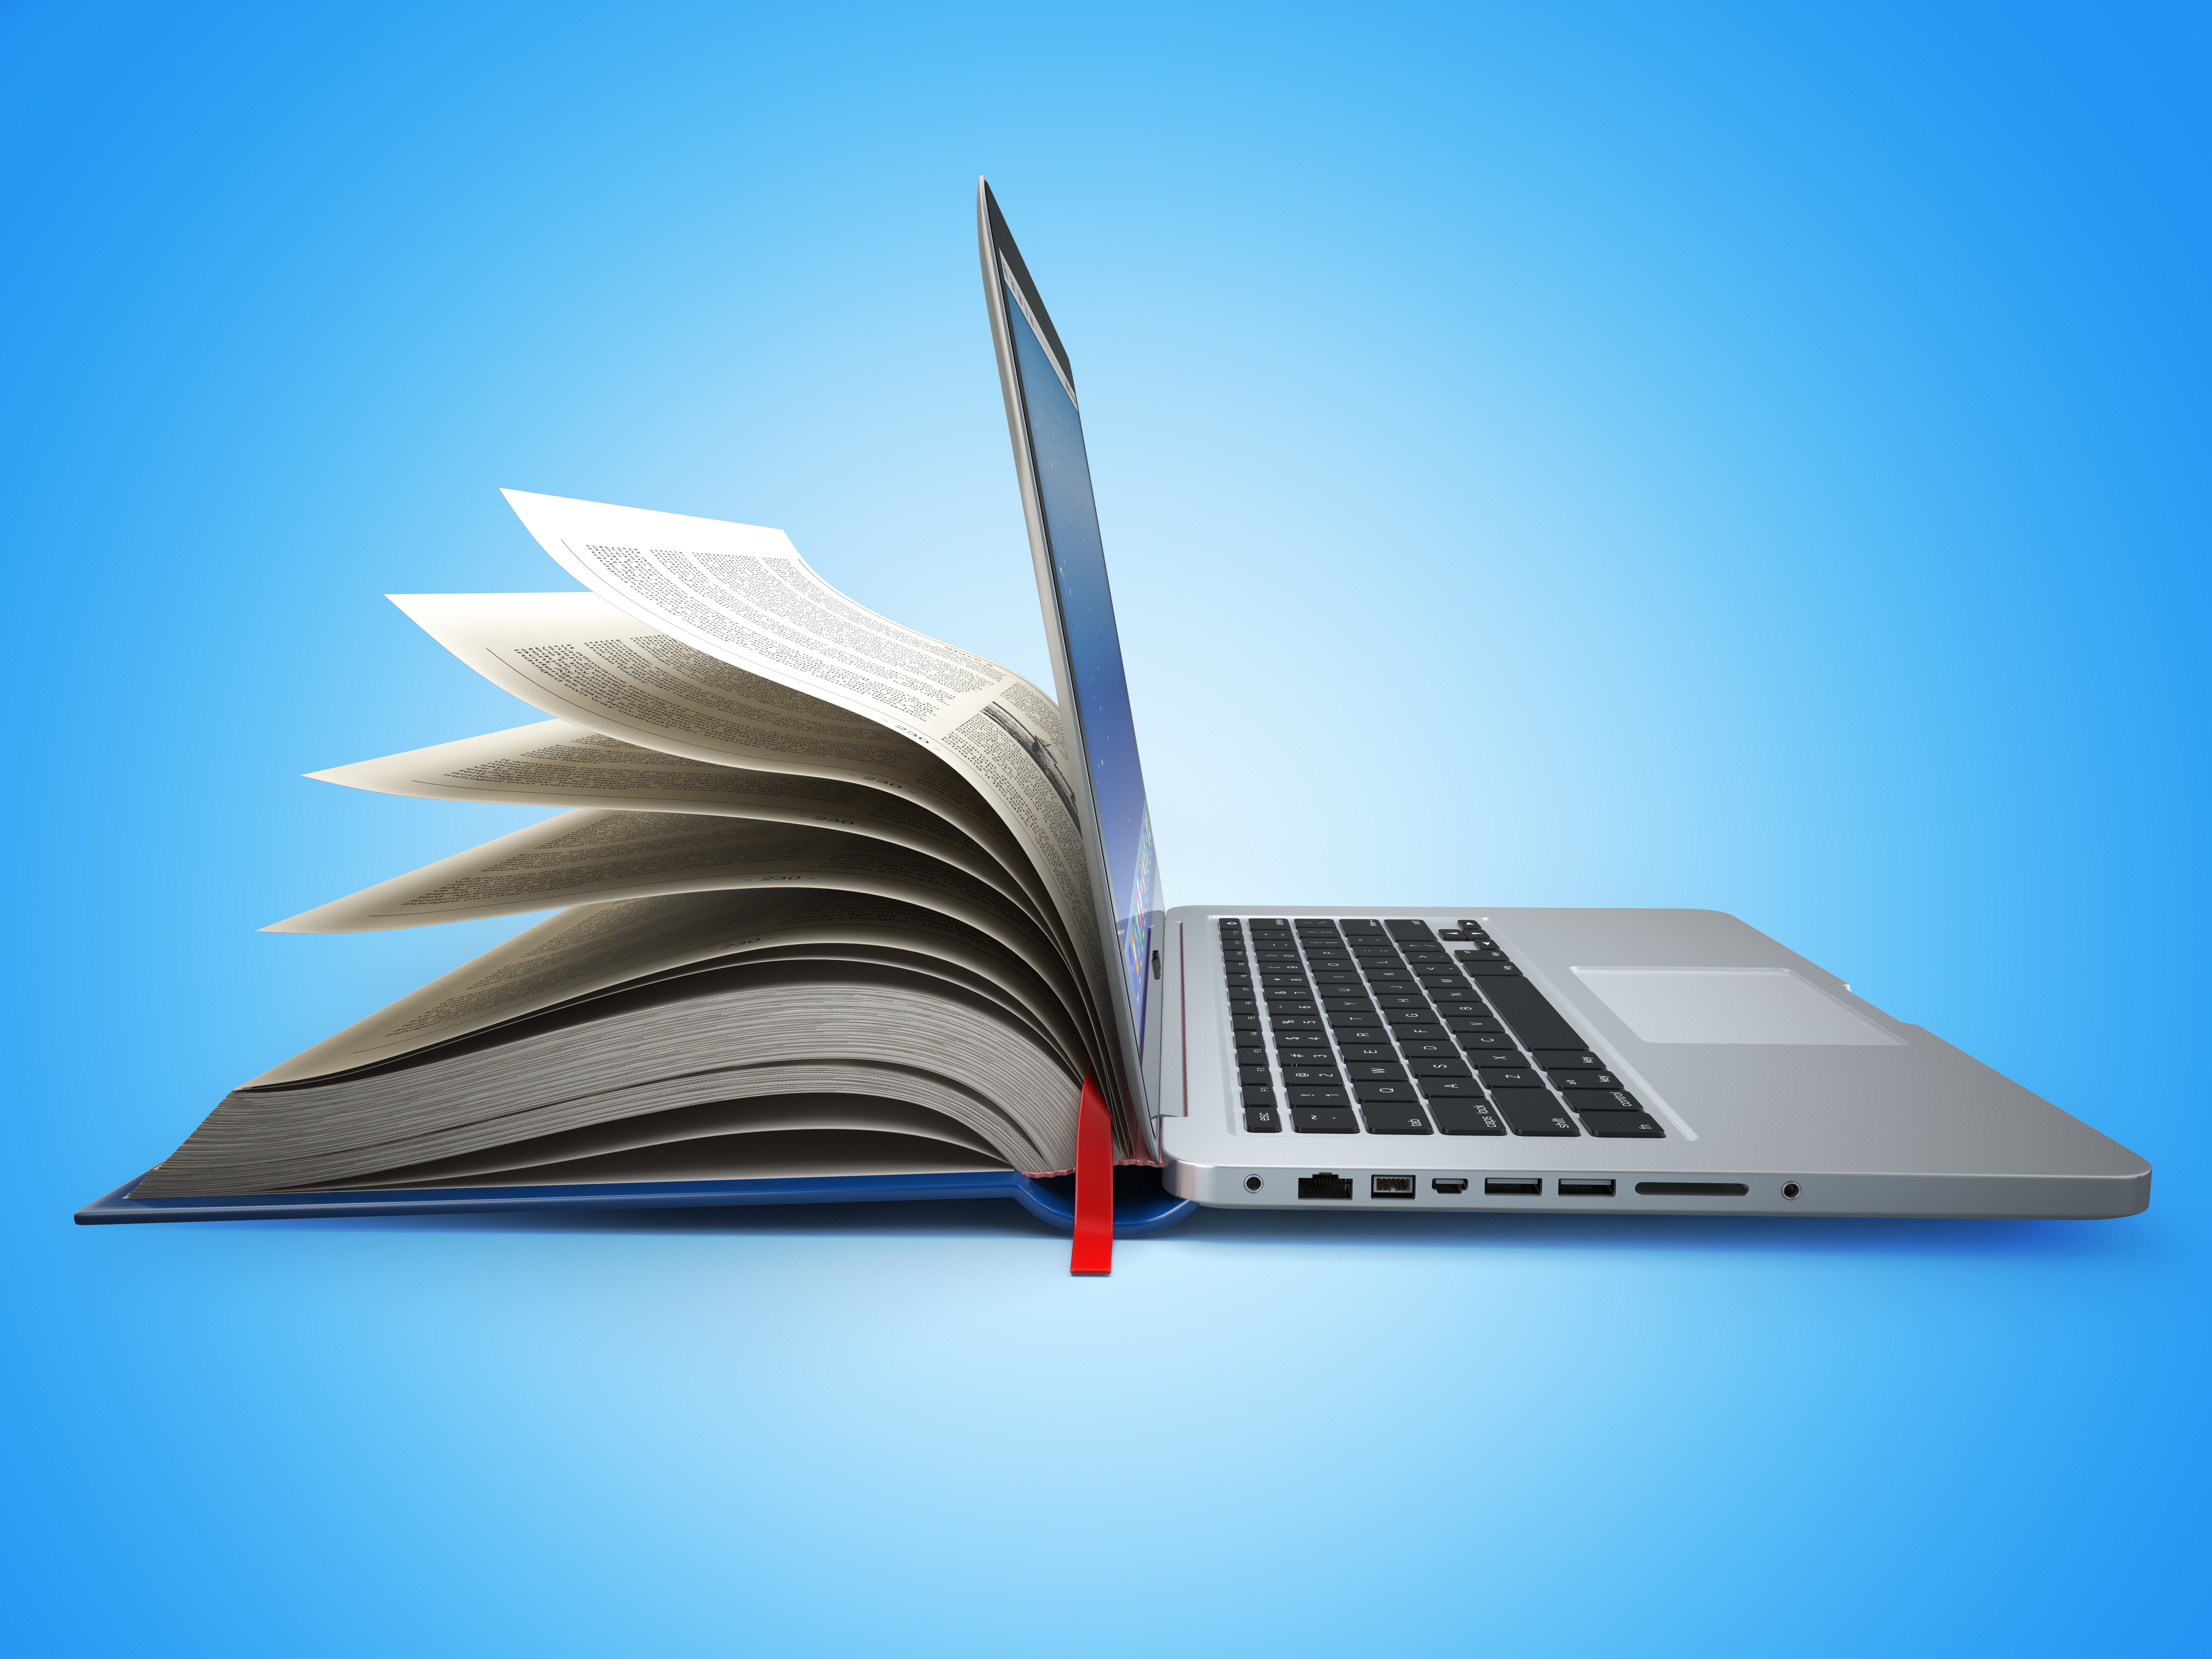 E-learning. Concept of education. Internet labrary. Book and Lap